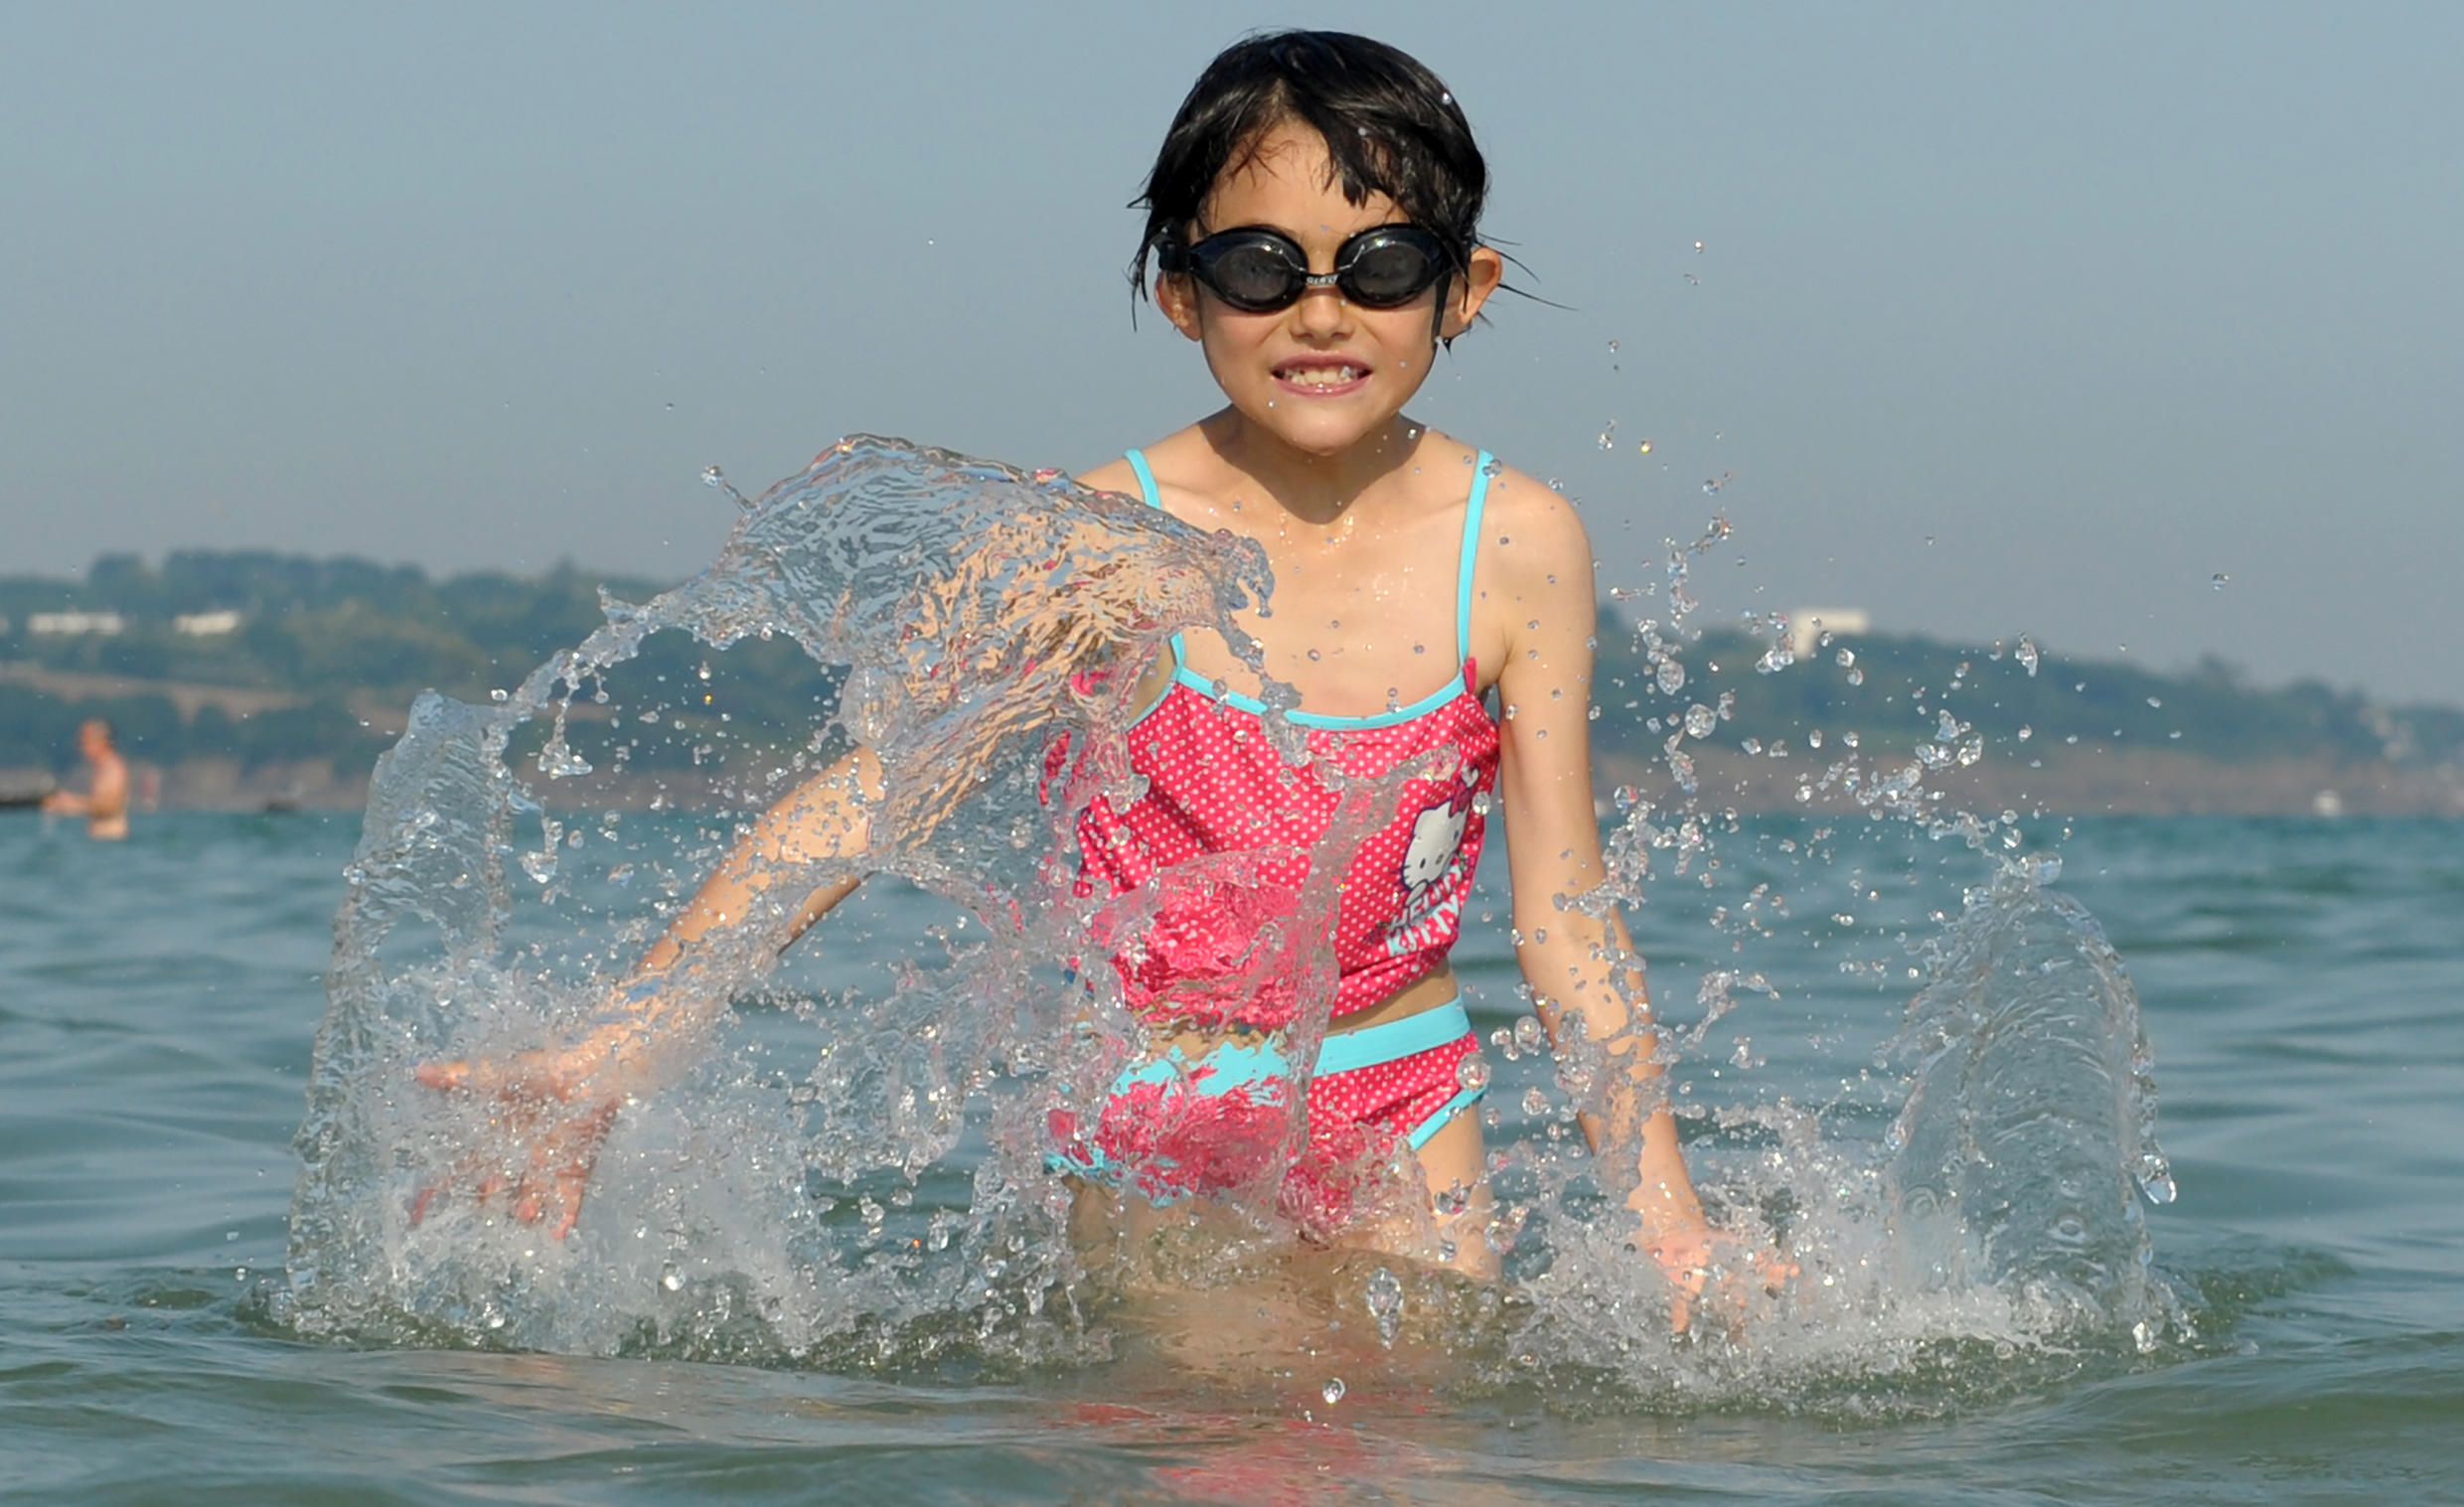 A child plays in the water on a beach in Fouesnant, western France.